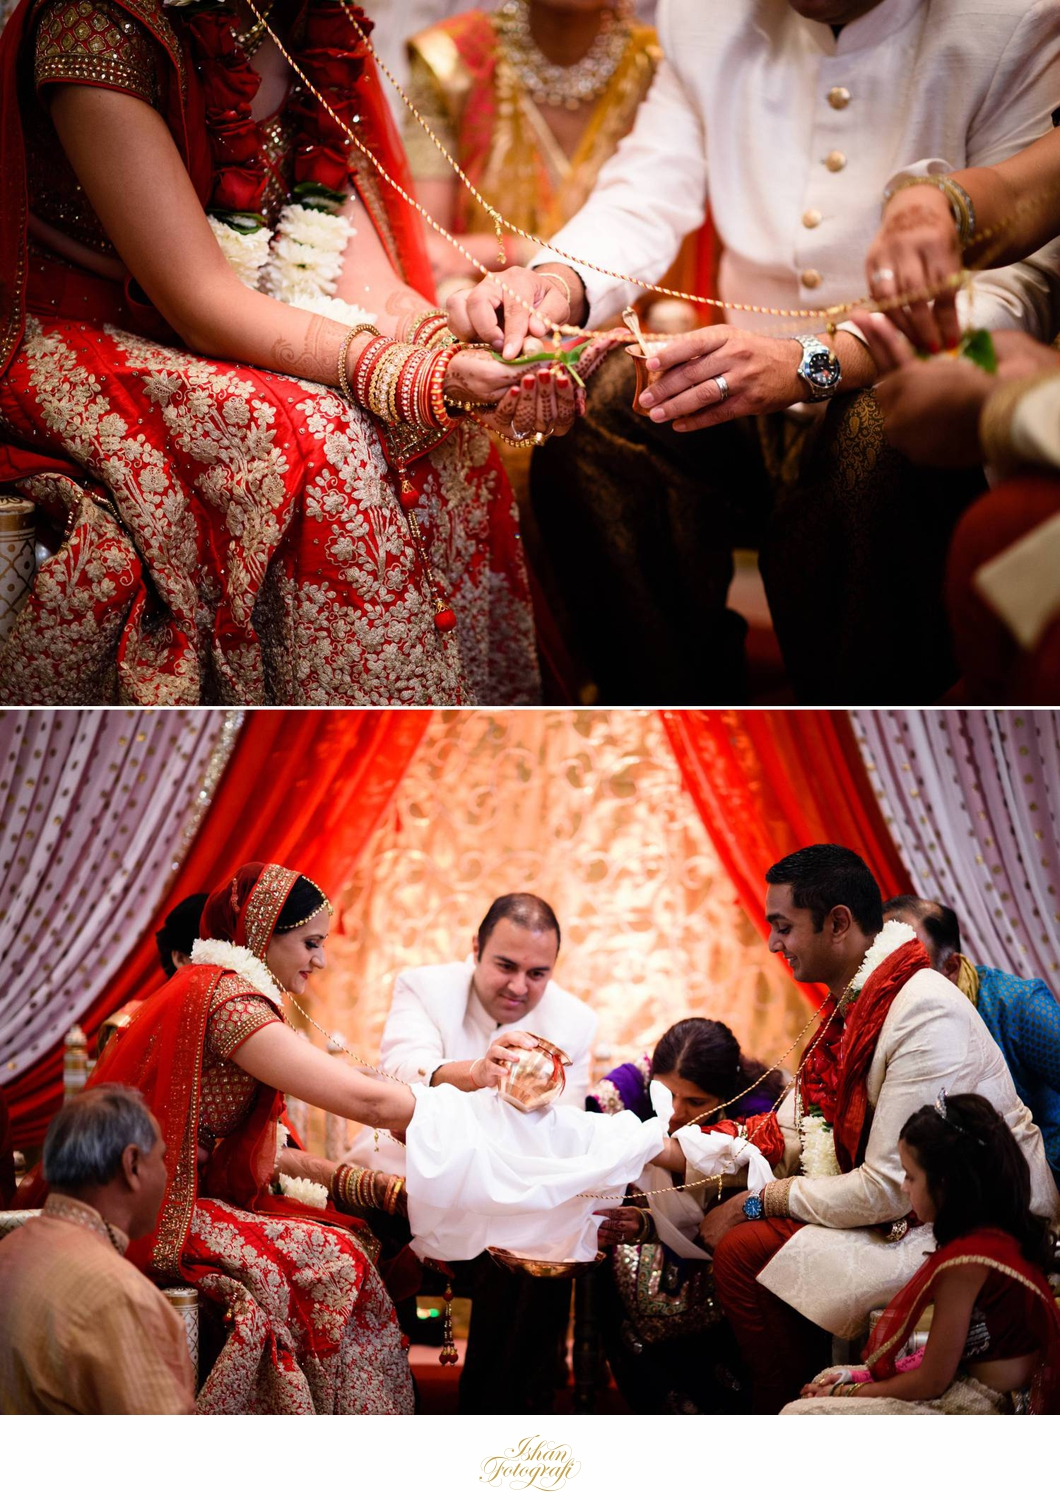 Traditional gujarati wedding ceremony typically lasts around one and a half hour. This is followed by vidaai.